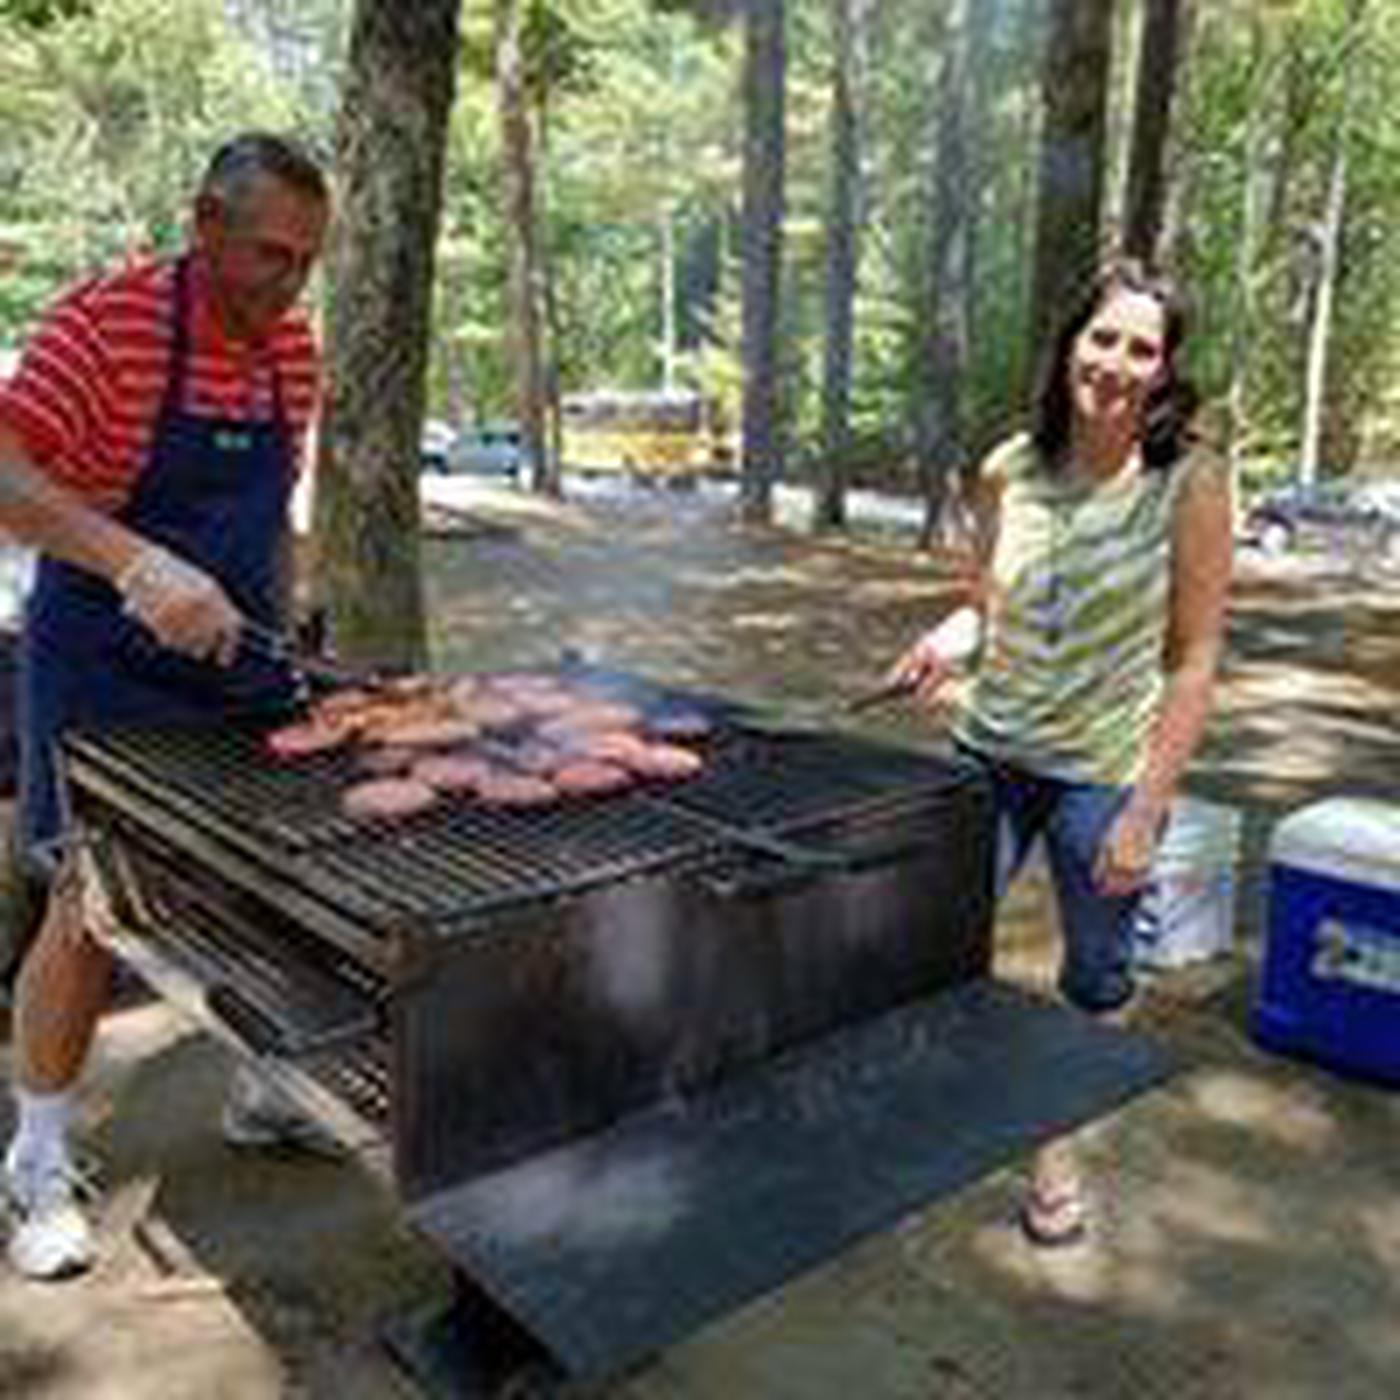 Two adults, man in apron, cooking burgers on a charcoal grill at the shelter area.  Coolers in background and forested area.Serve it your way with family and friends.  Grills provided at all shelters and picnic groves.